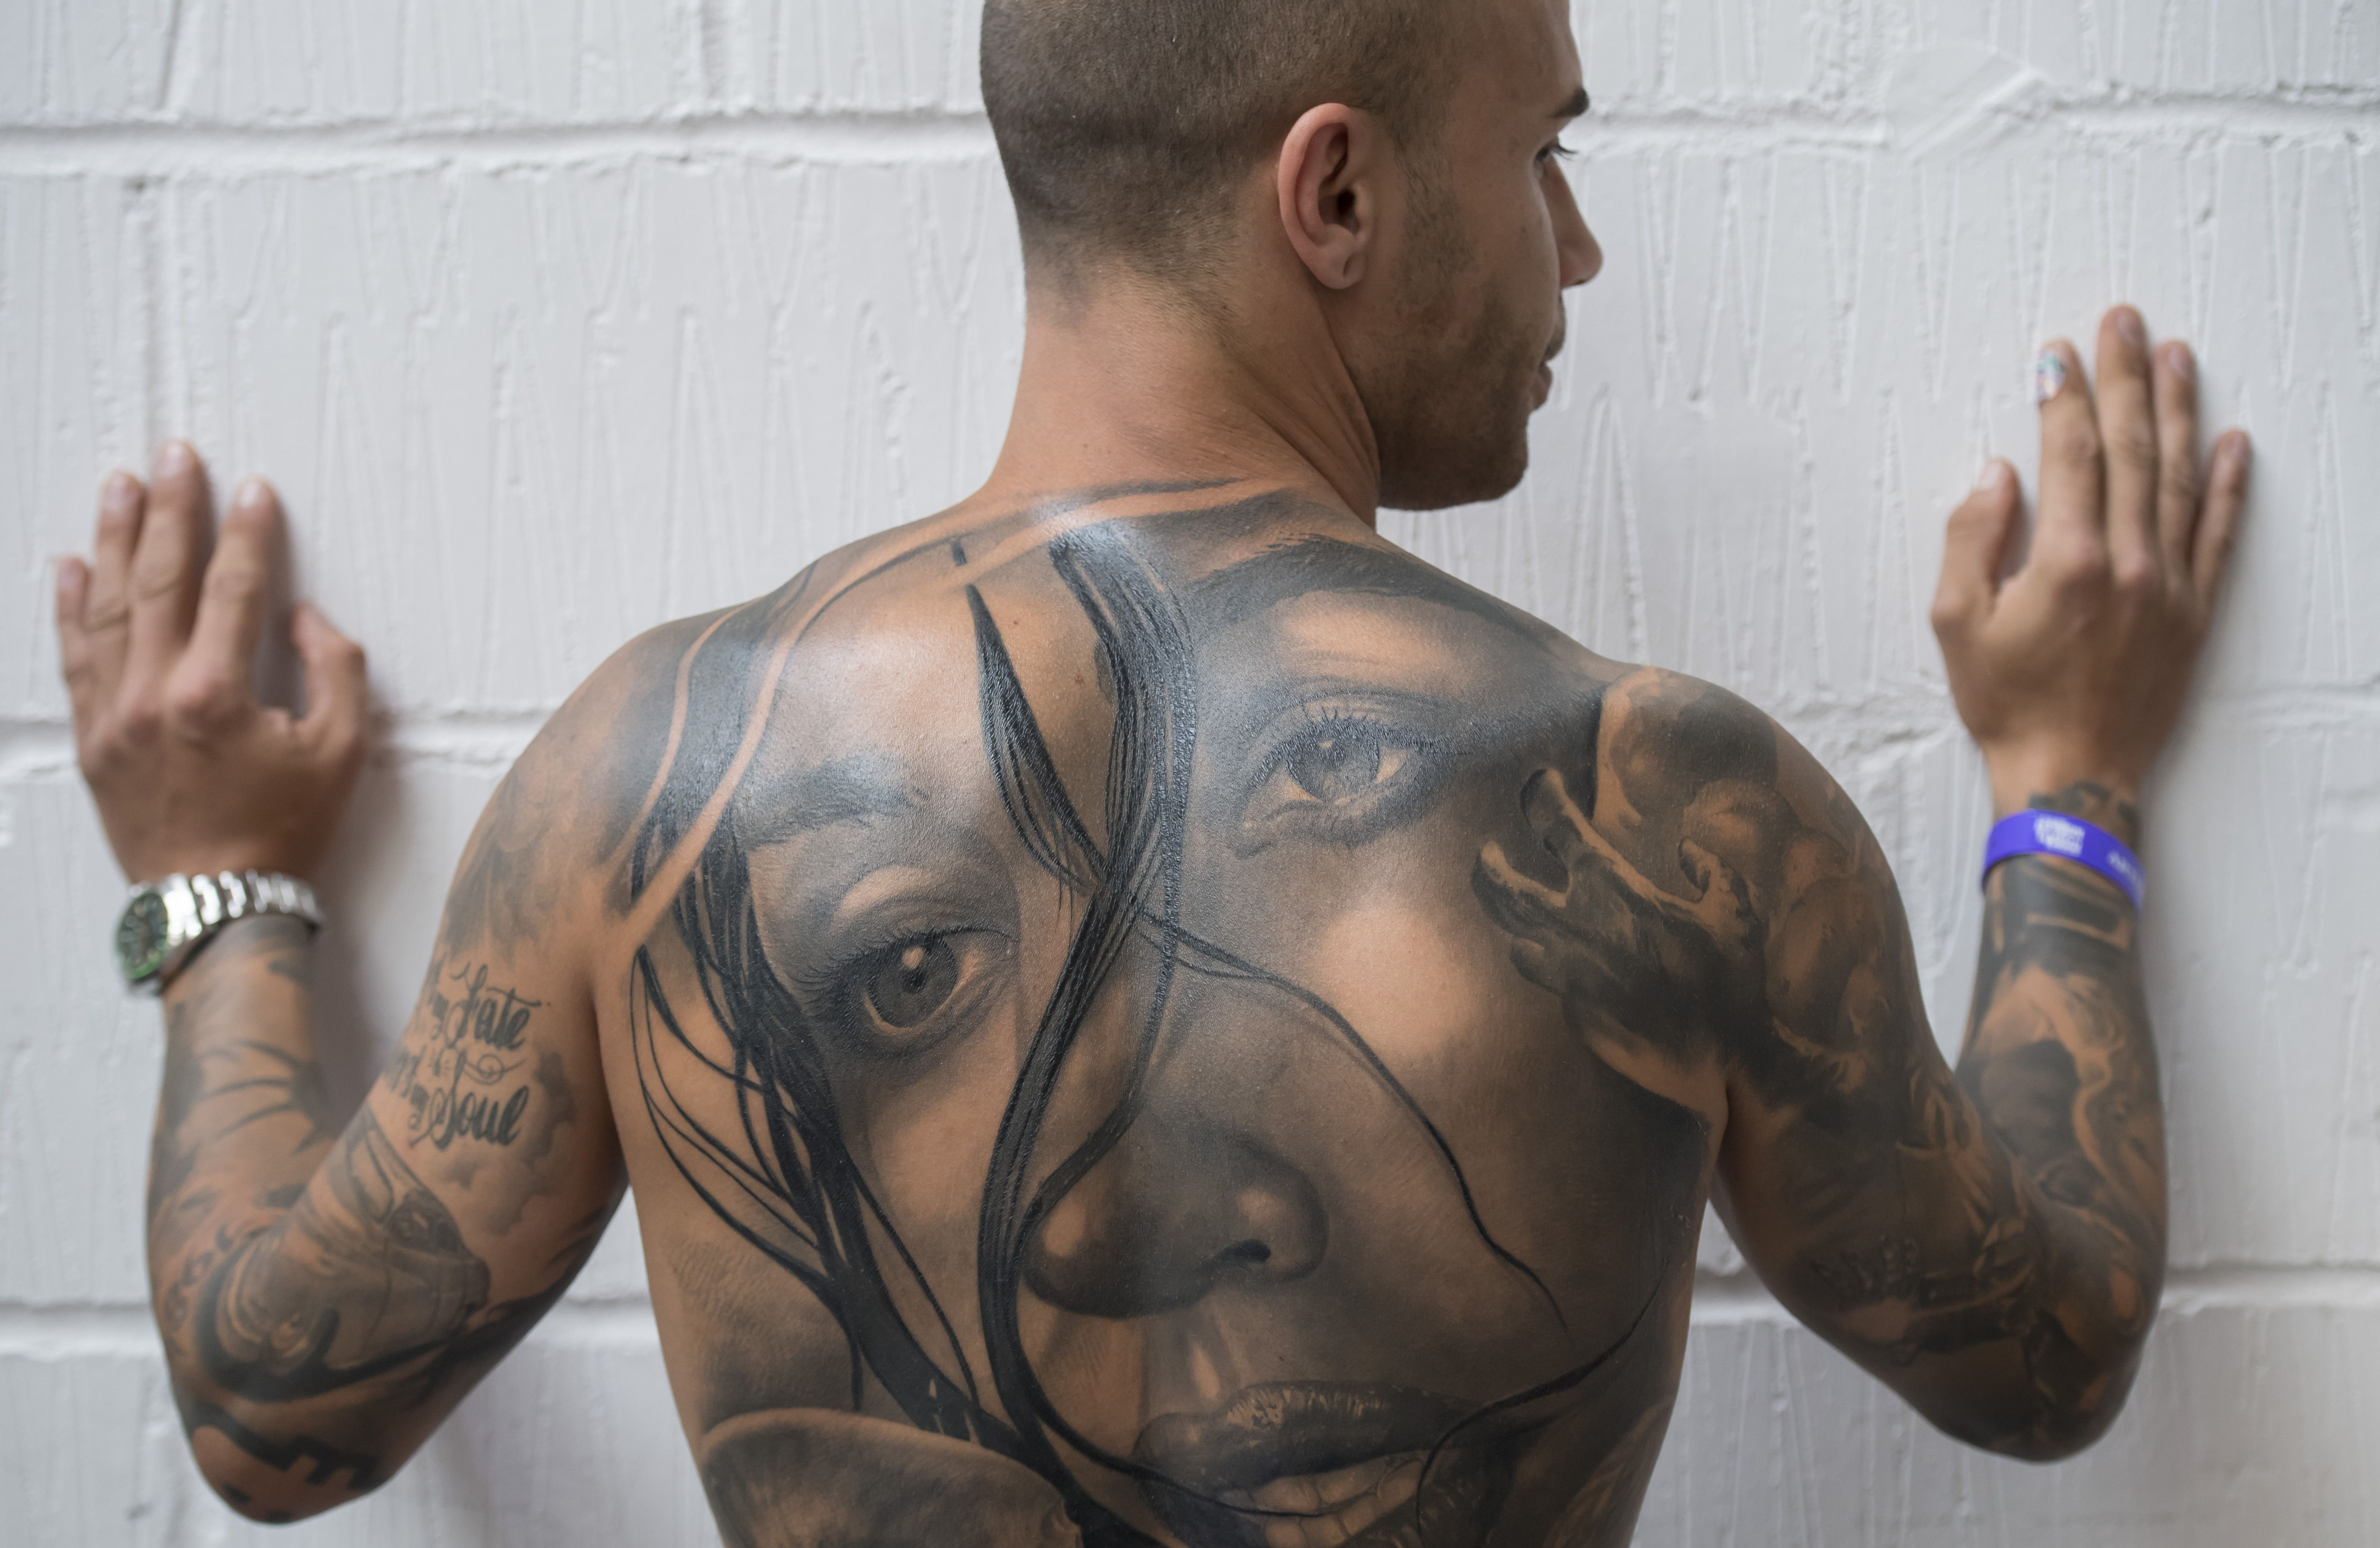 5bef351c8858e Outlining or Shading a Tattoo: Which Hurts More?